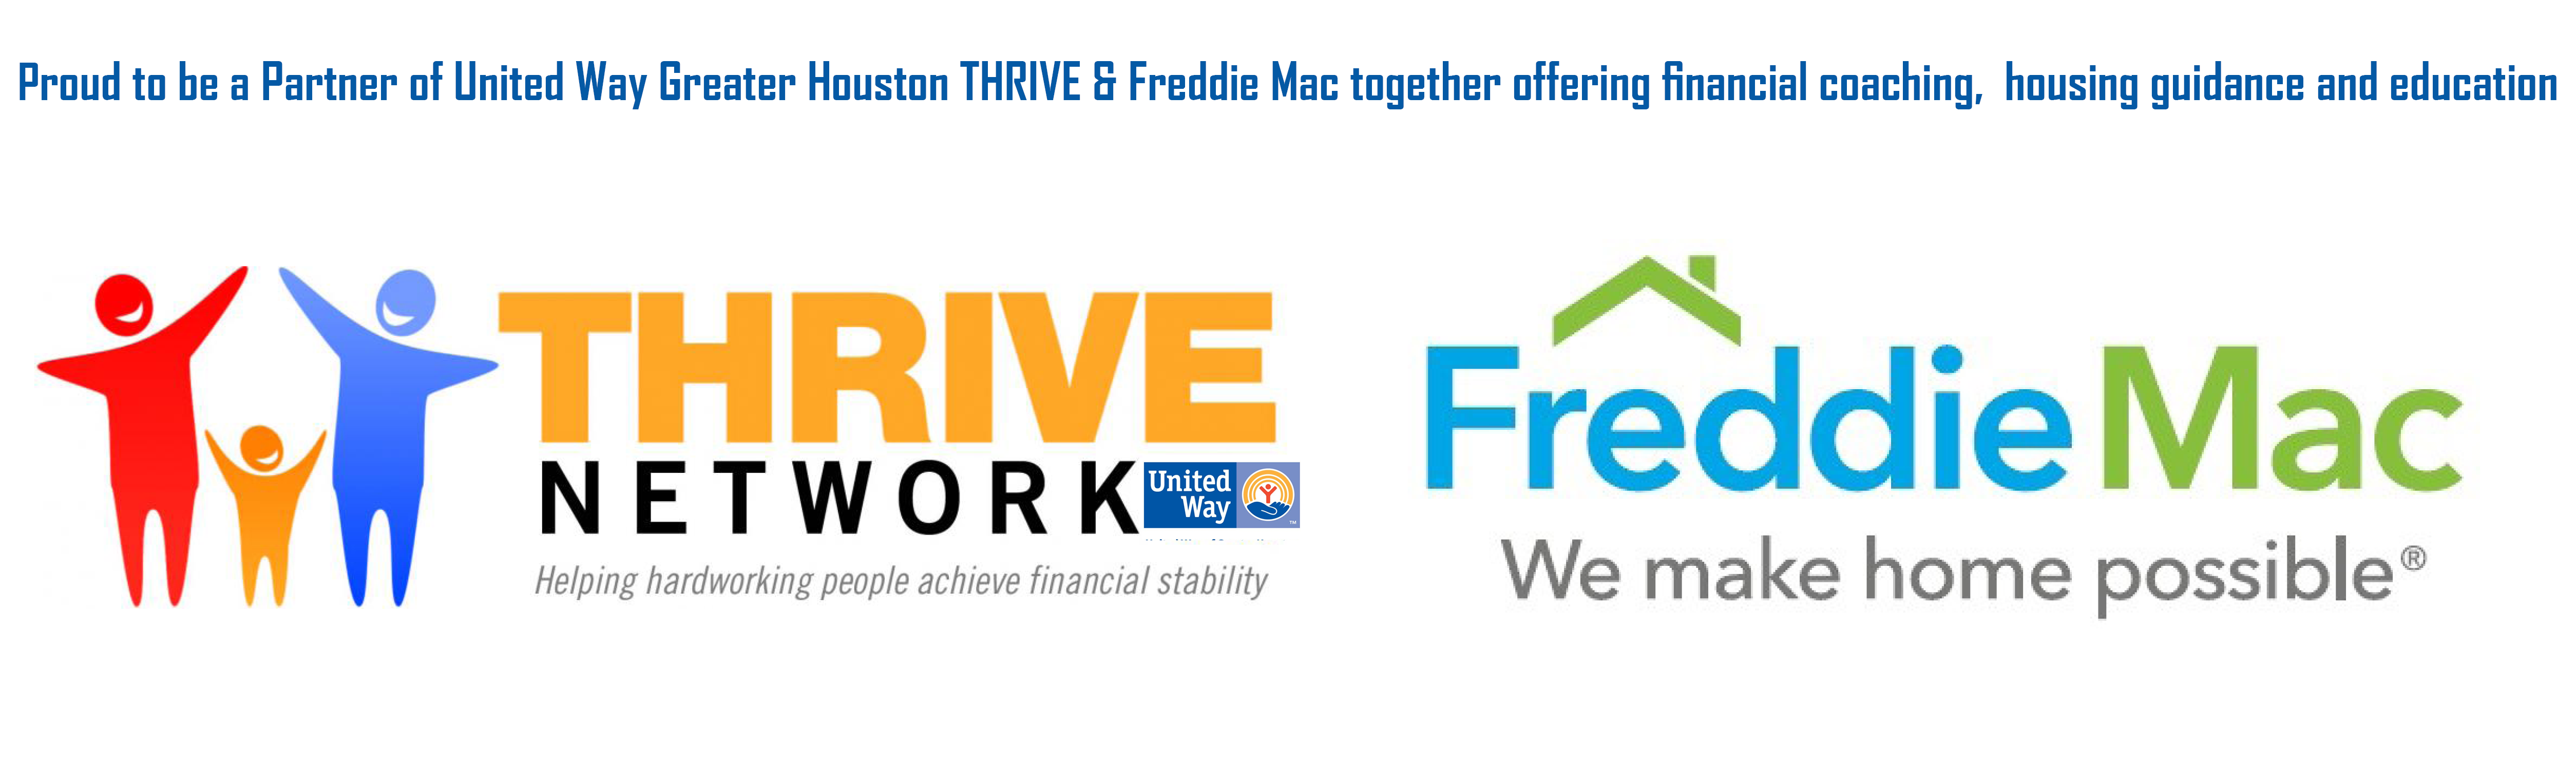 United Way Greater Houston THRIVE & Freddie Mac